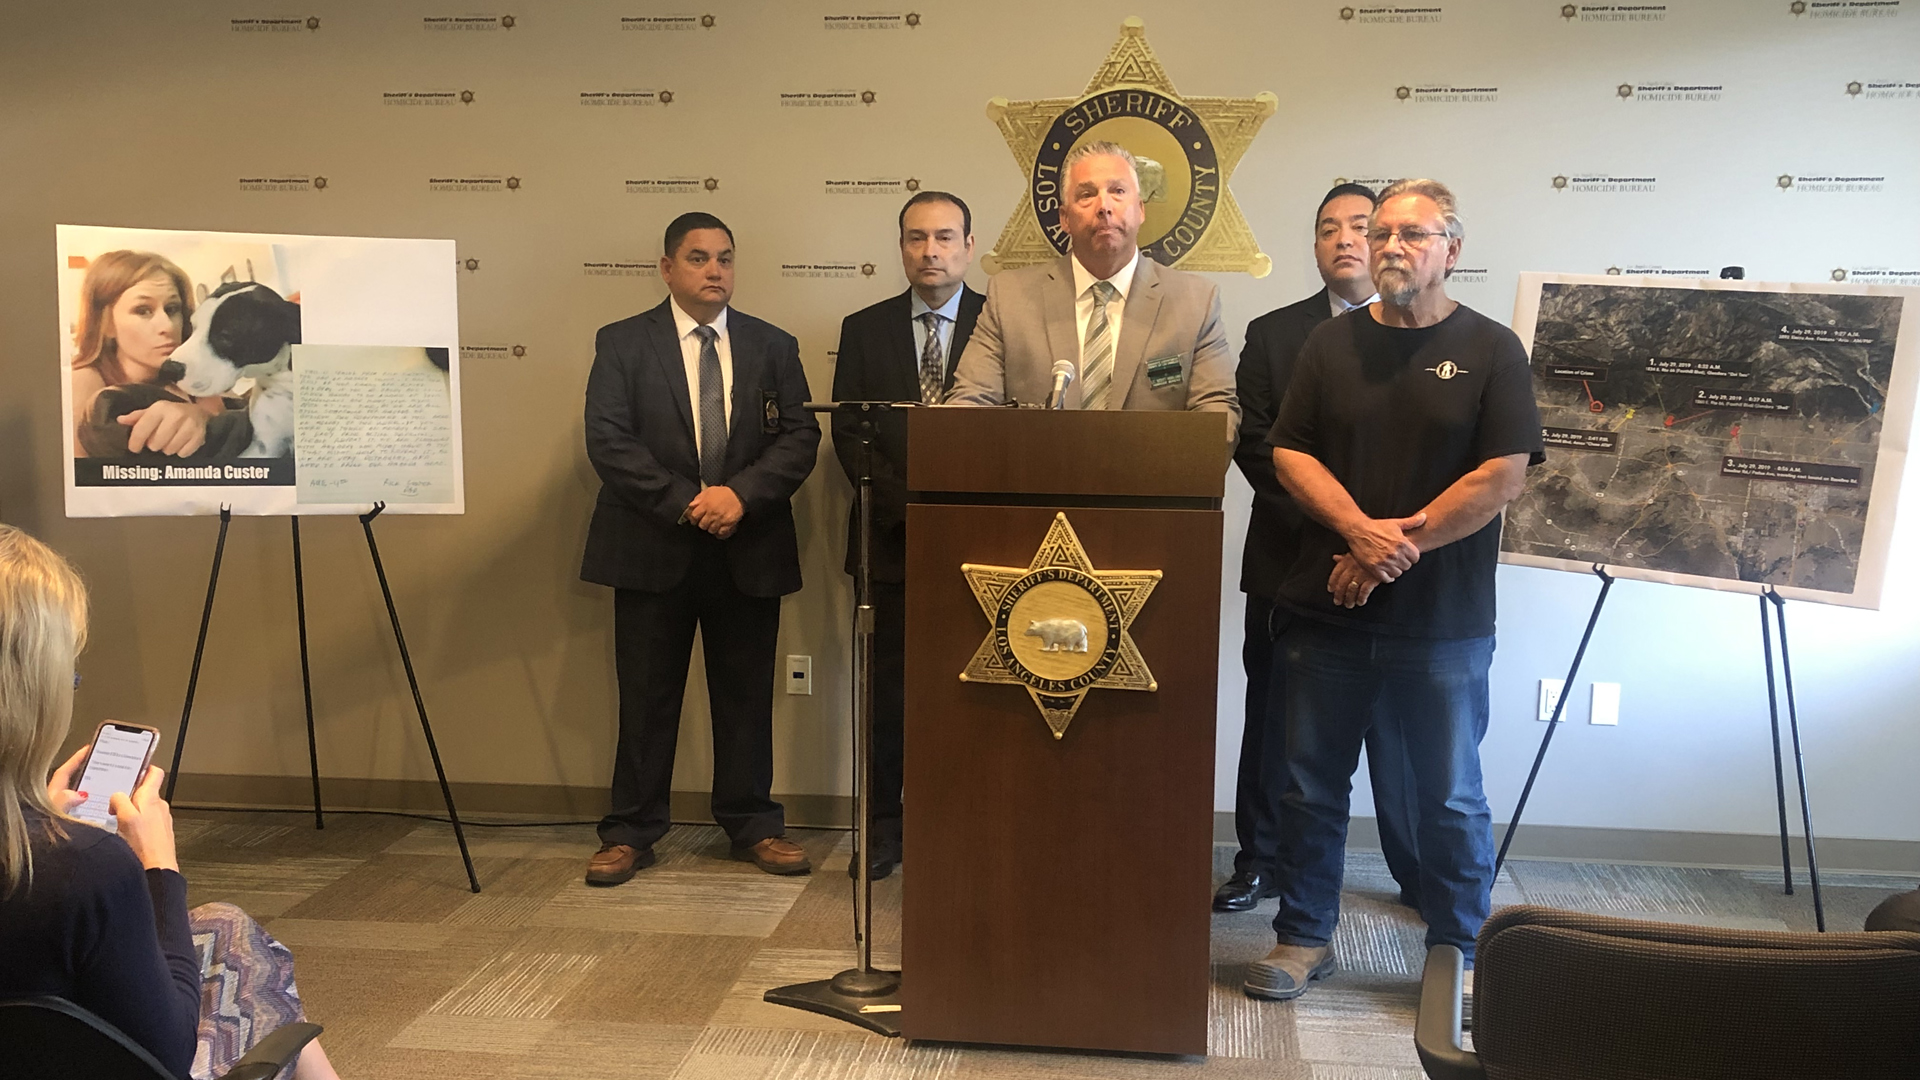 Los Angeles County Sheriff's Department officials provide an update to the continued search for Amanda Custer on Aug. 8, 2019. (Credit: KTLA)